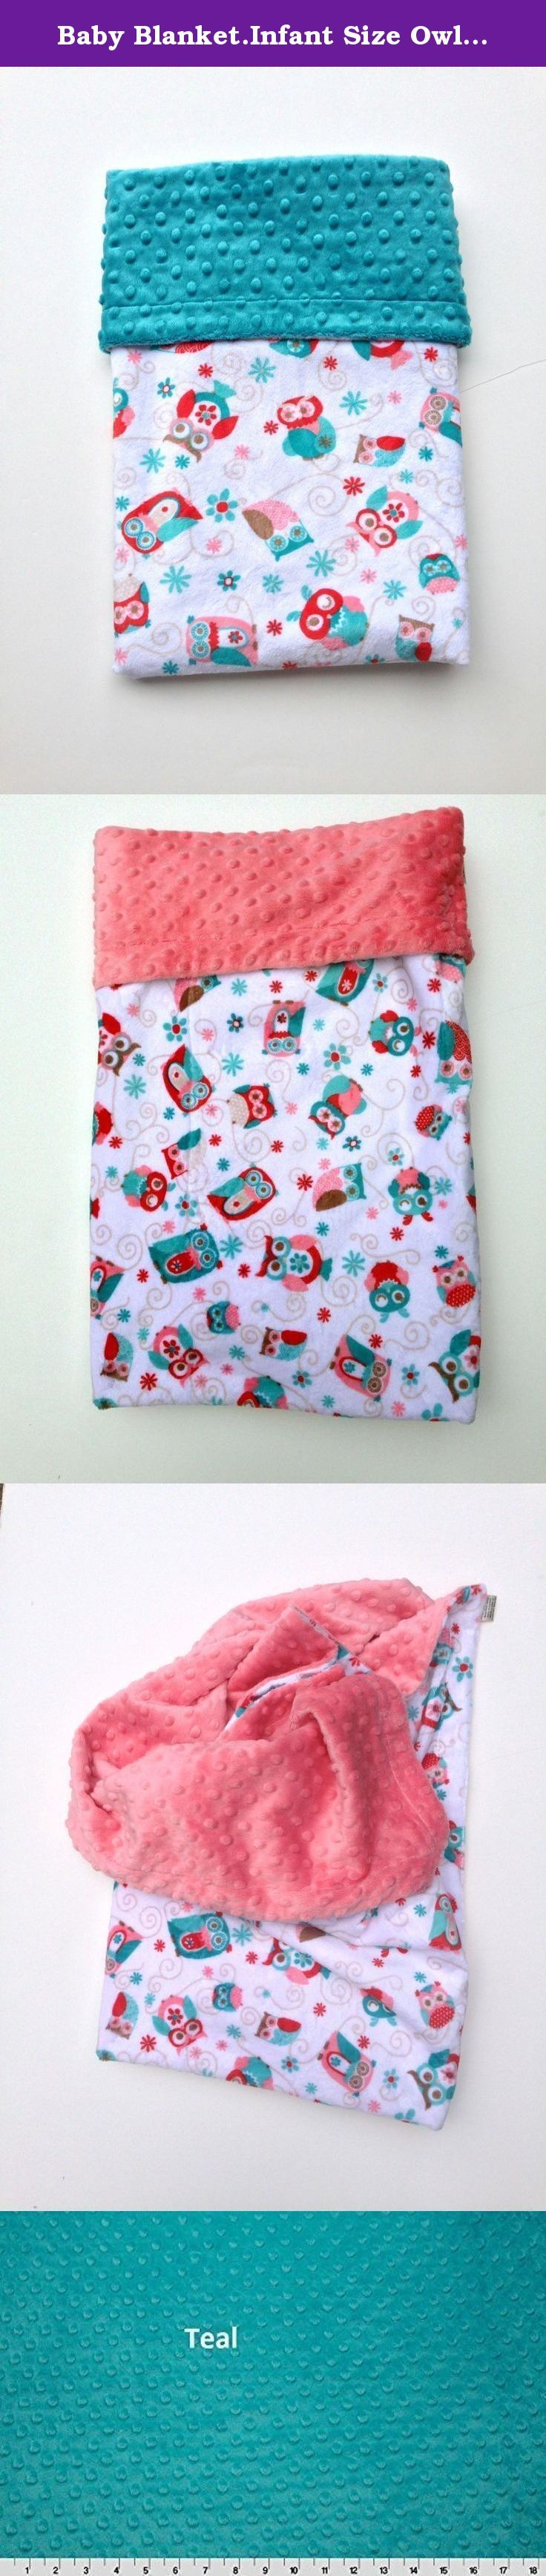 Baby Blanket.Infant Size Owl Blanket, Car Seat Blanket or Stroller Blanket Size 29 x 36in. Owl Minky Baby blanket with Teal and Coral Owls scattered over a white background The back can be backed with your choice of Teal or Coral Minky Dot Fabric.This is a double side Minky Blanket great for your car seat stroller and works excellent for shower gift for newborn. All blankets are sewn and top stitched for durability. This is an exceptionally soft and cozy fabric. Machine Wash Cold Tumble…